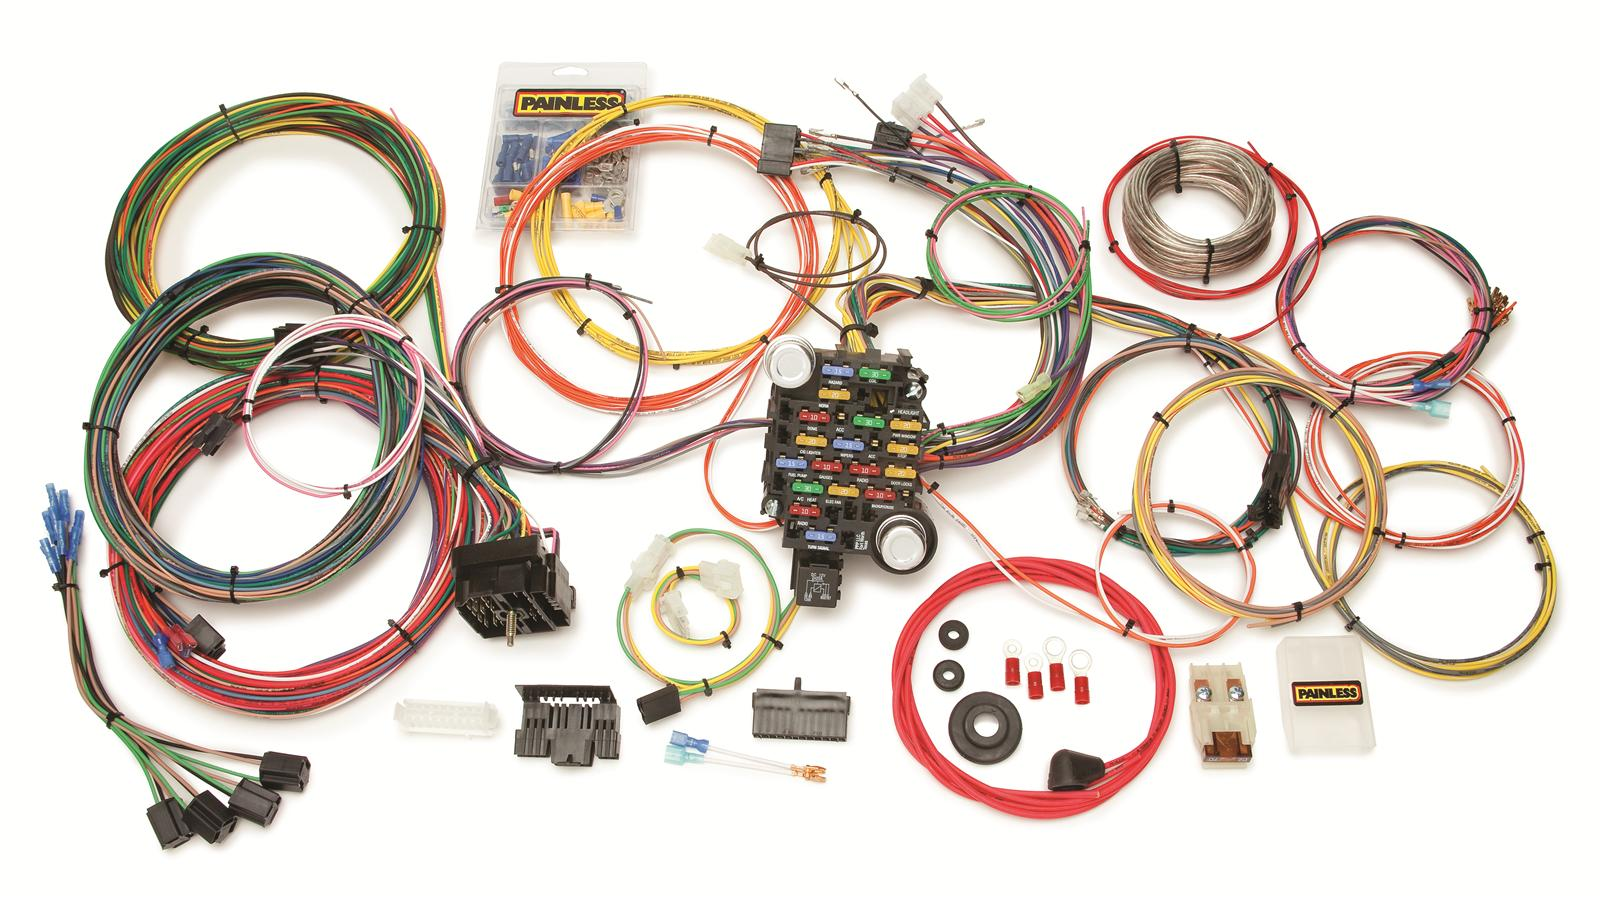 prf 10205_xl painless performance gmc chevy truck harnesses 10205 free complete wiring harness for 1967 chevy truck at gsmportal.co